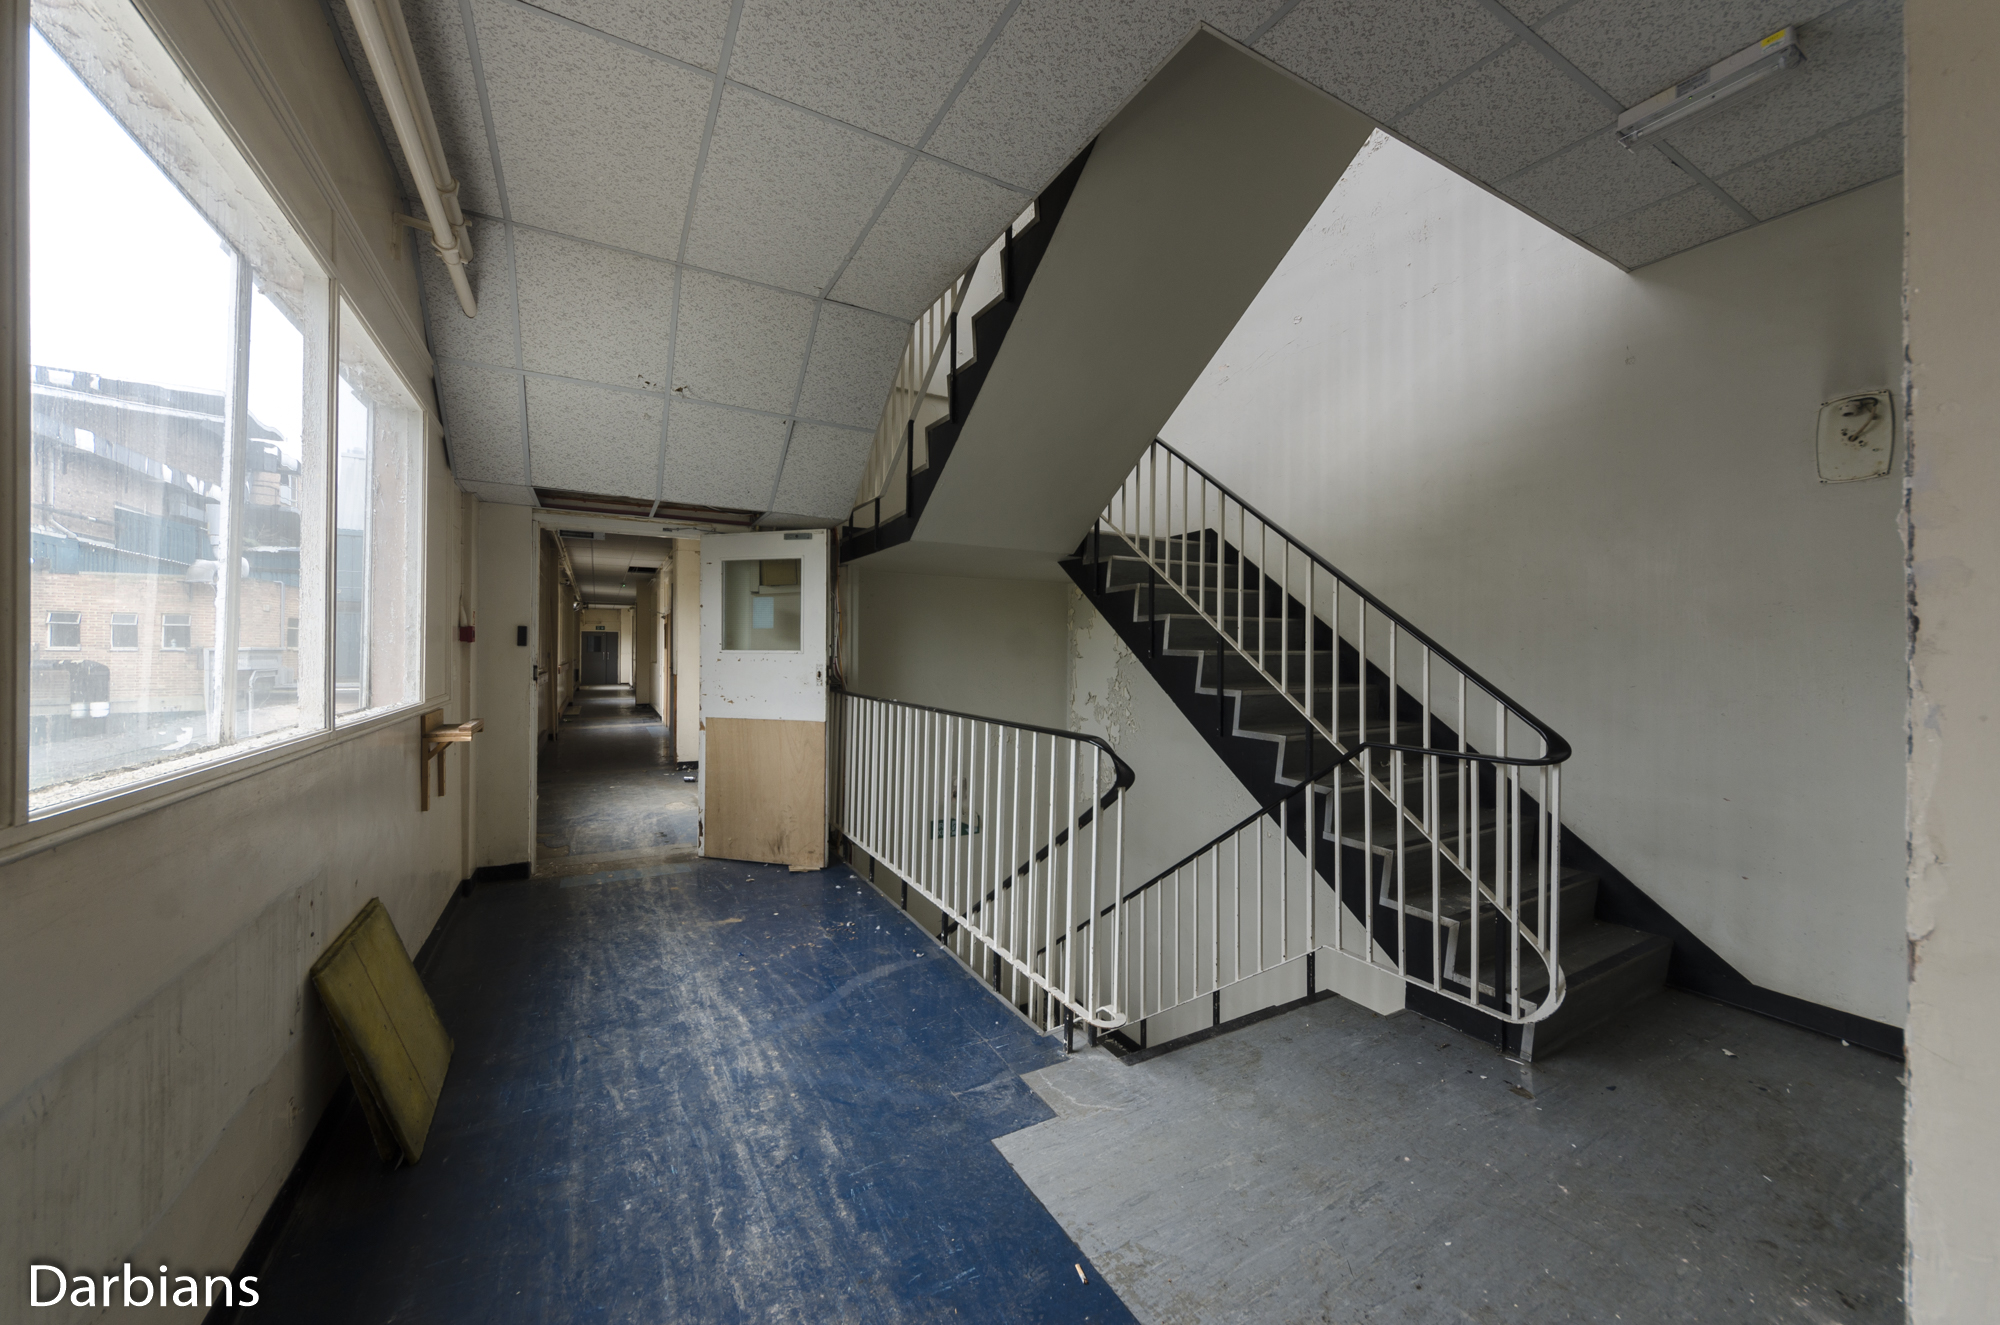 Deluxe London: Corridor and stairwell to the warehouse.